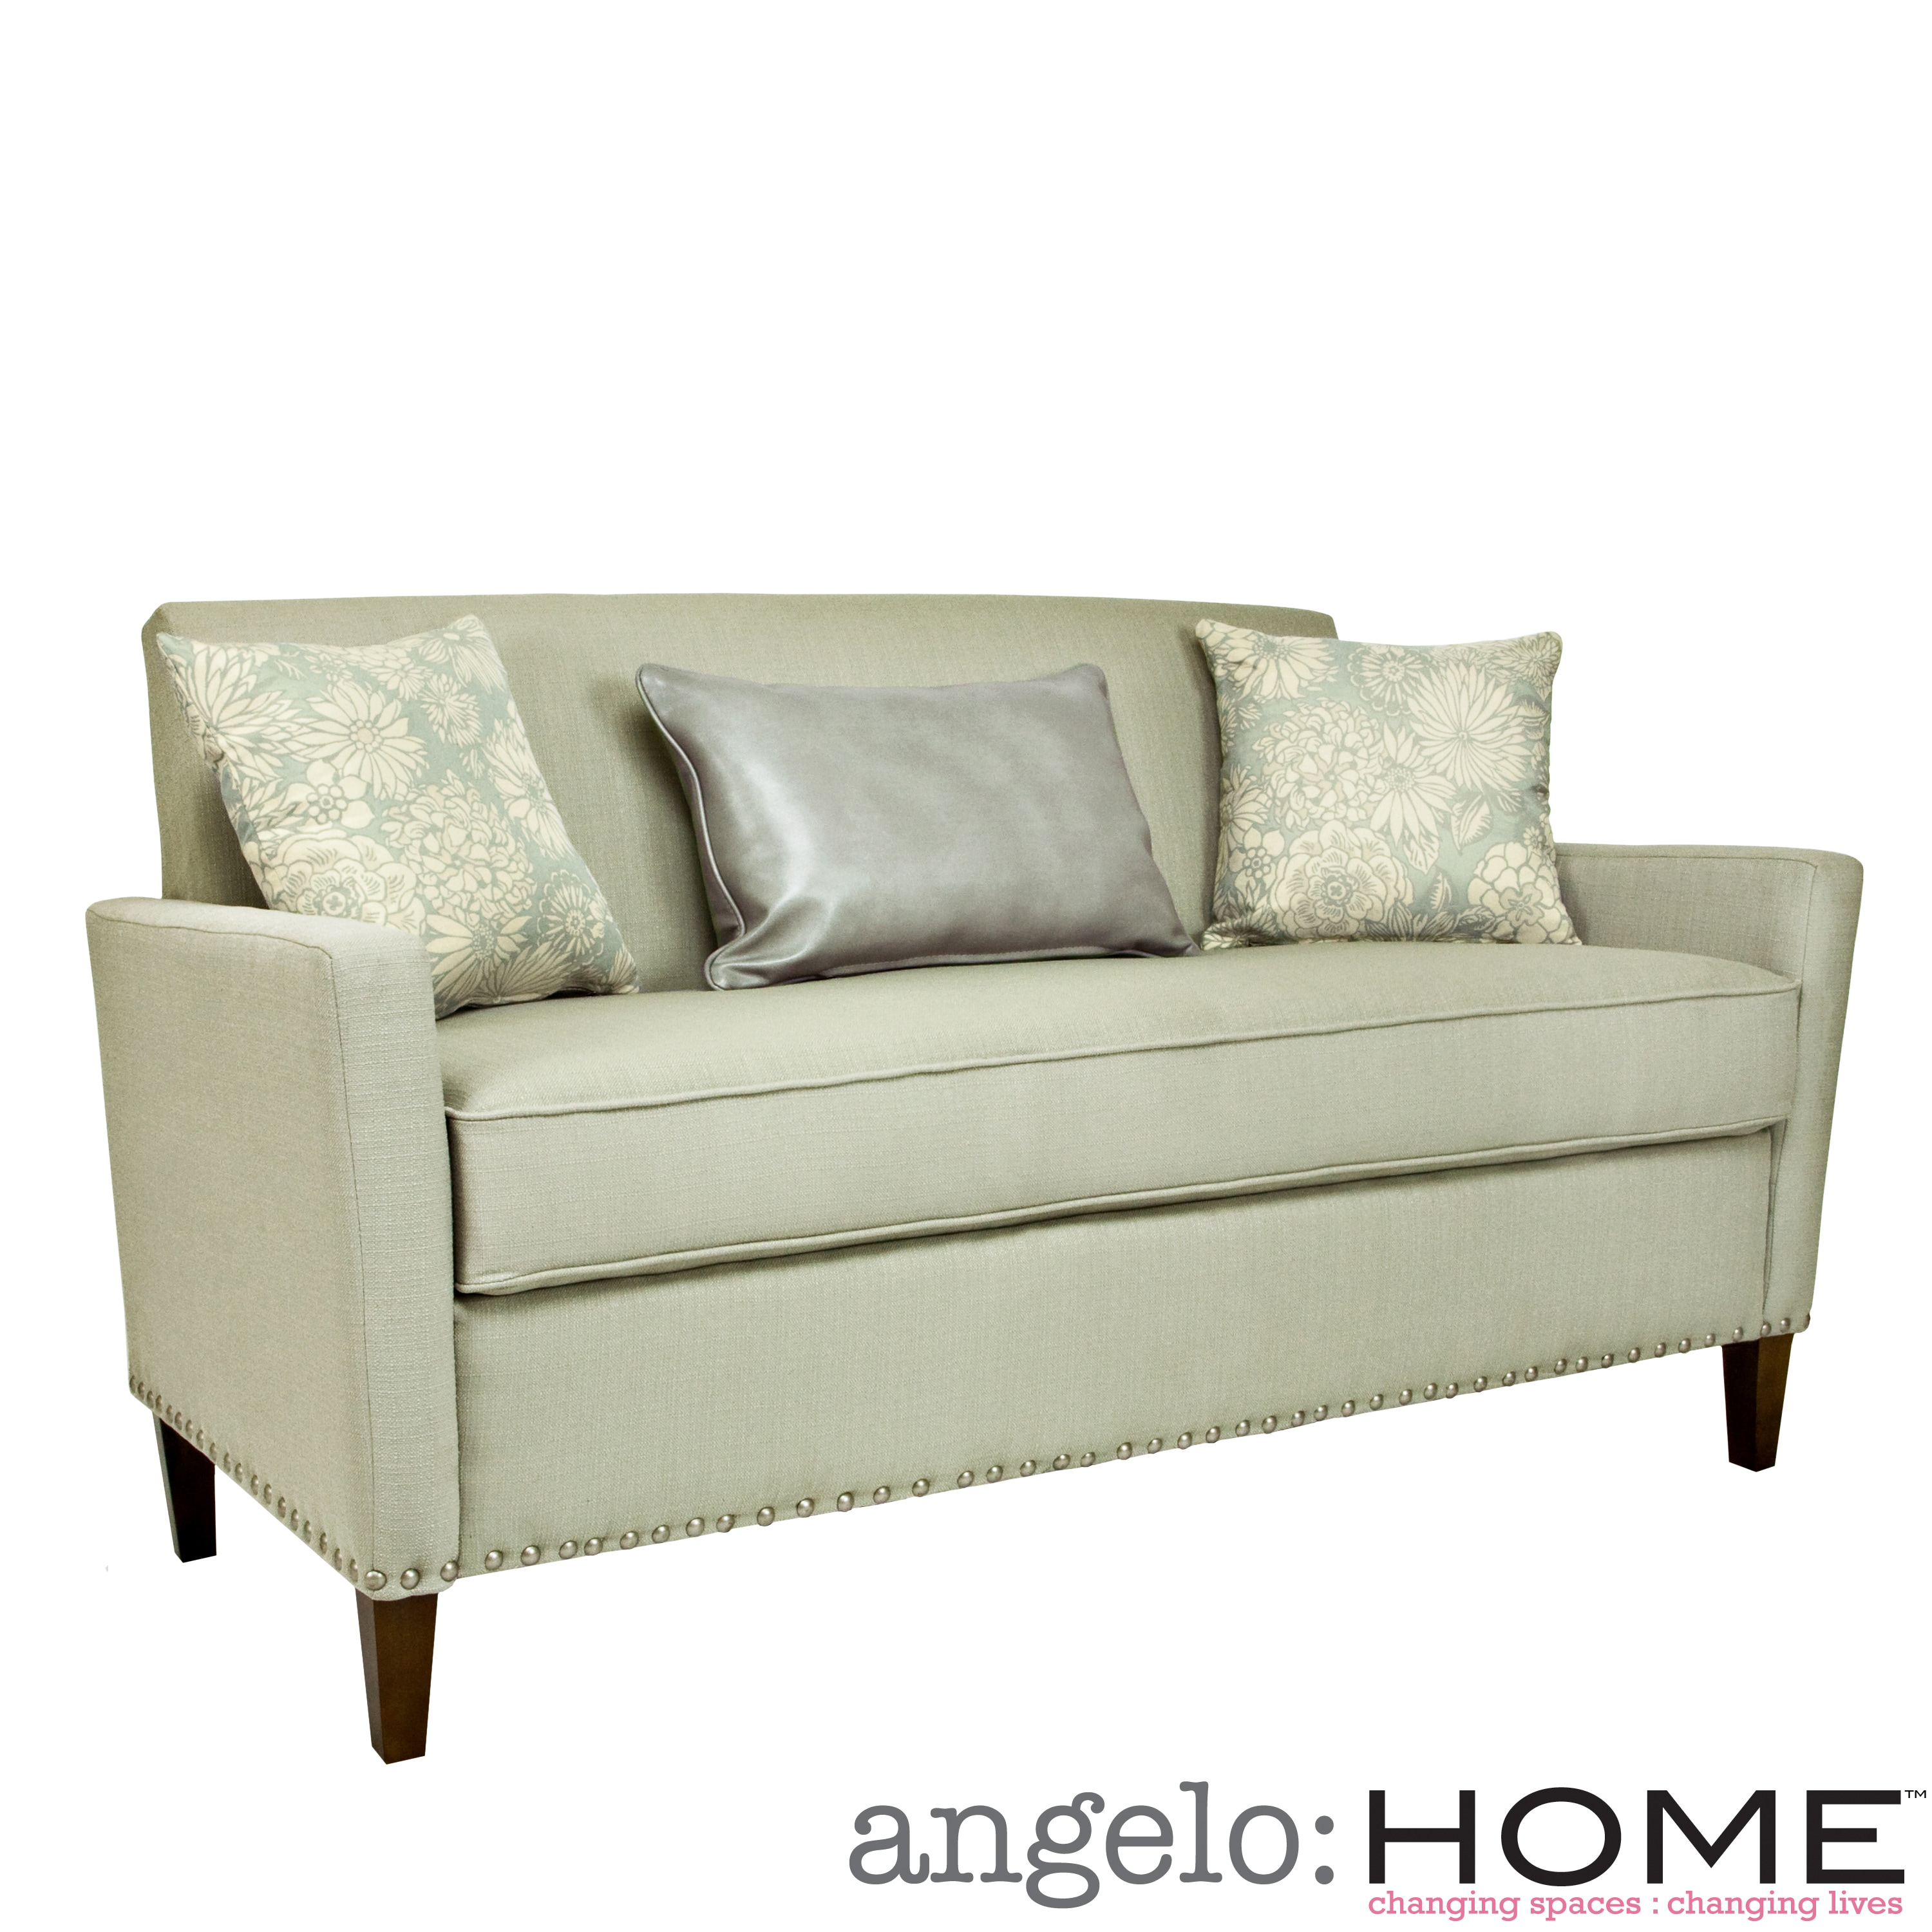 Angelohome angelo:HOME Sutton Washed Clay Earth Gray Sofa at Sears.com